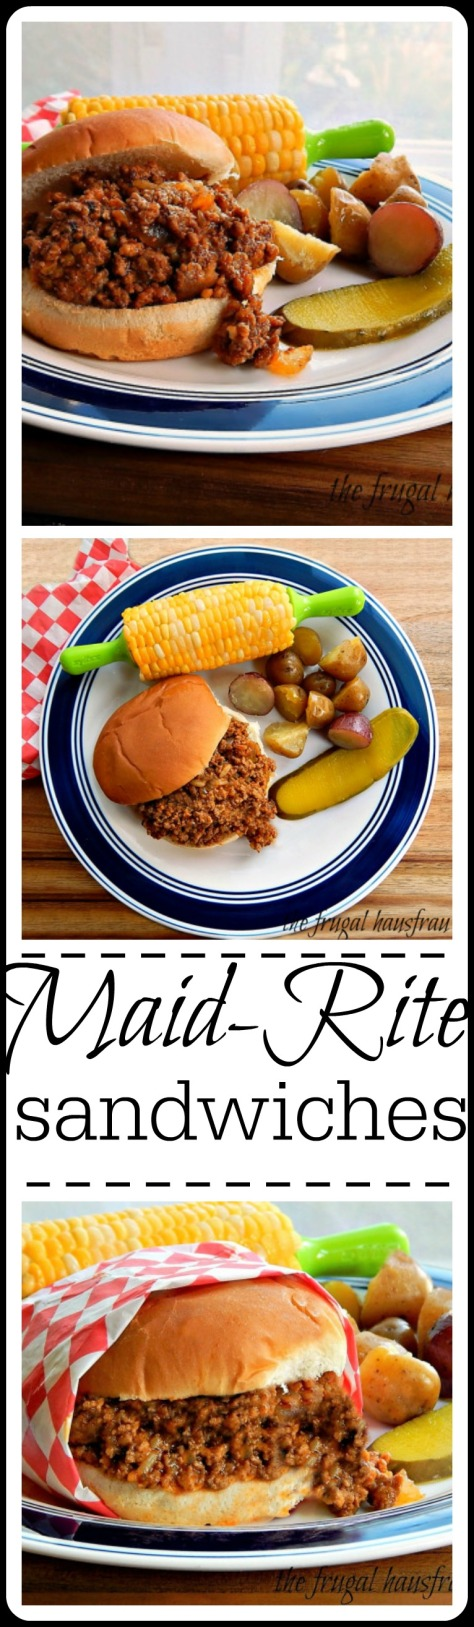 maid rite sandwiches, sometimes called Tavern Sandwiches or Sloppy Joes